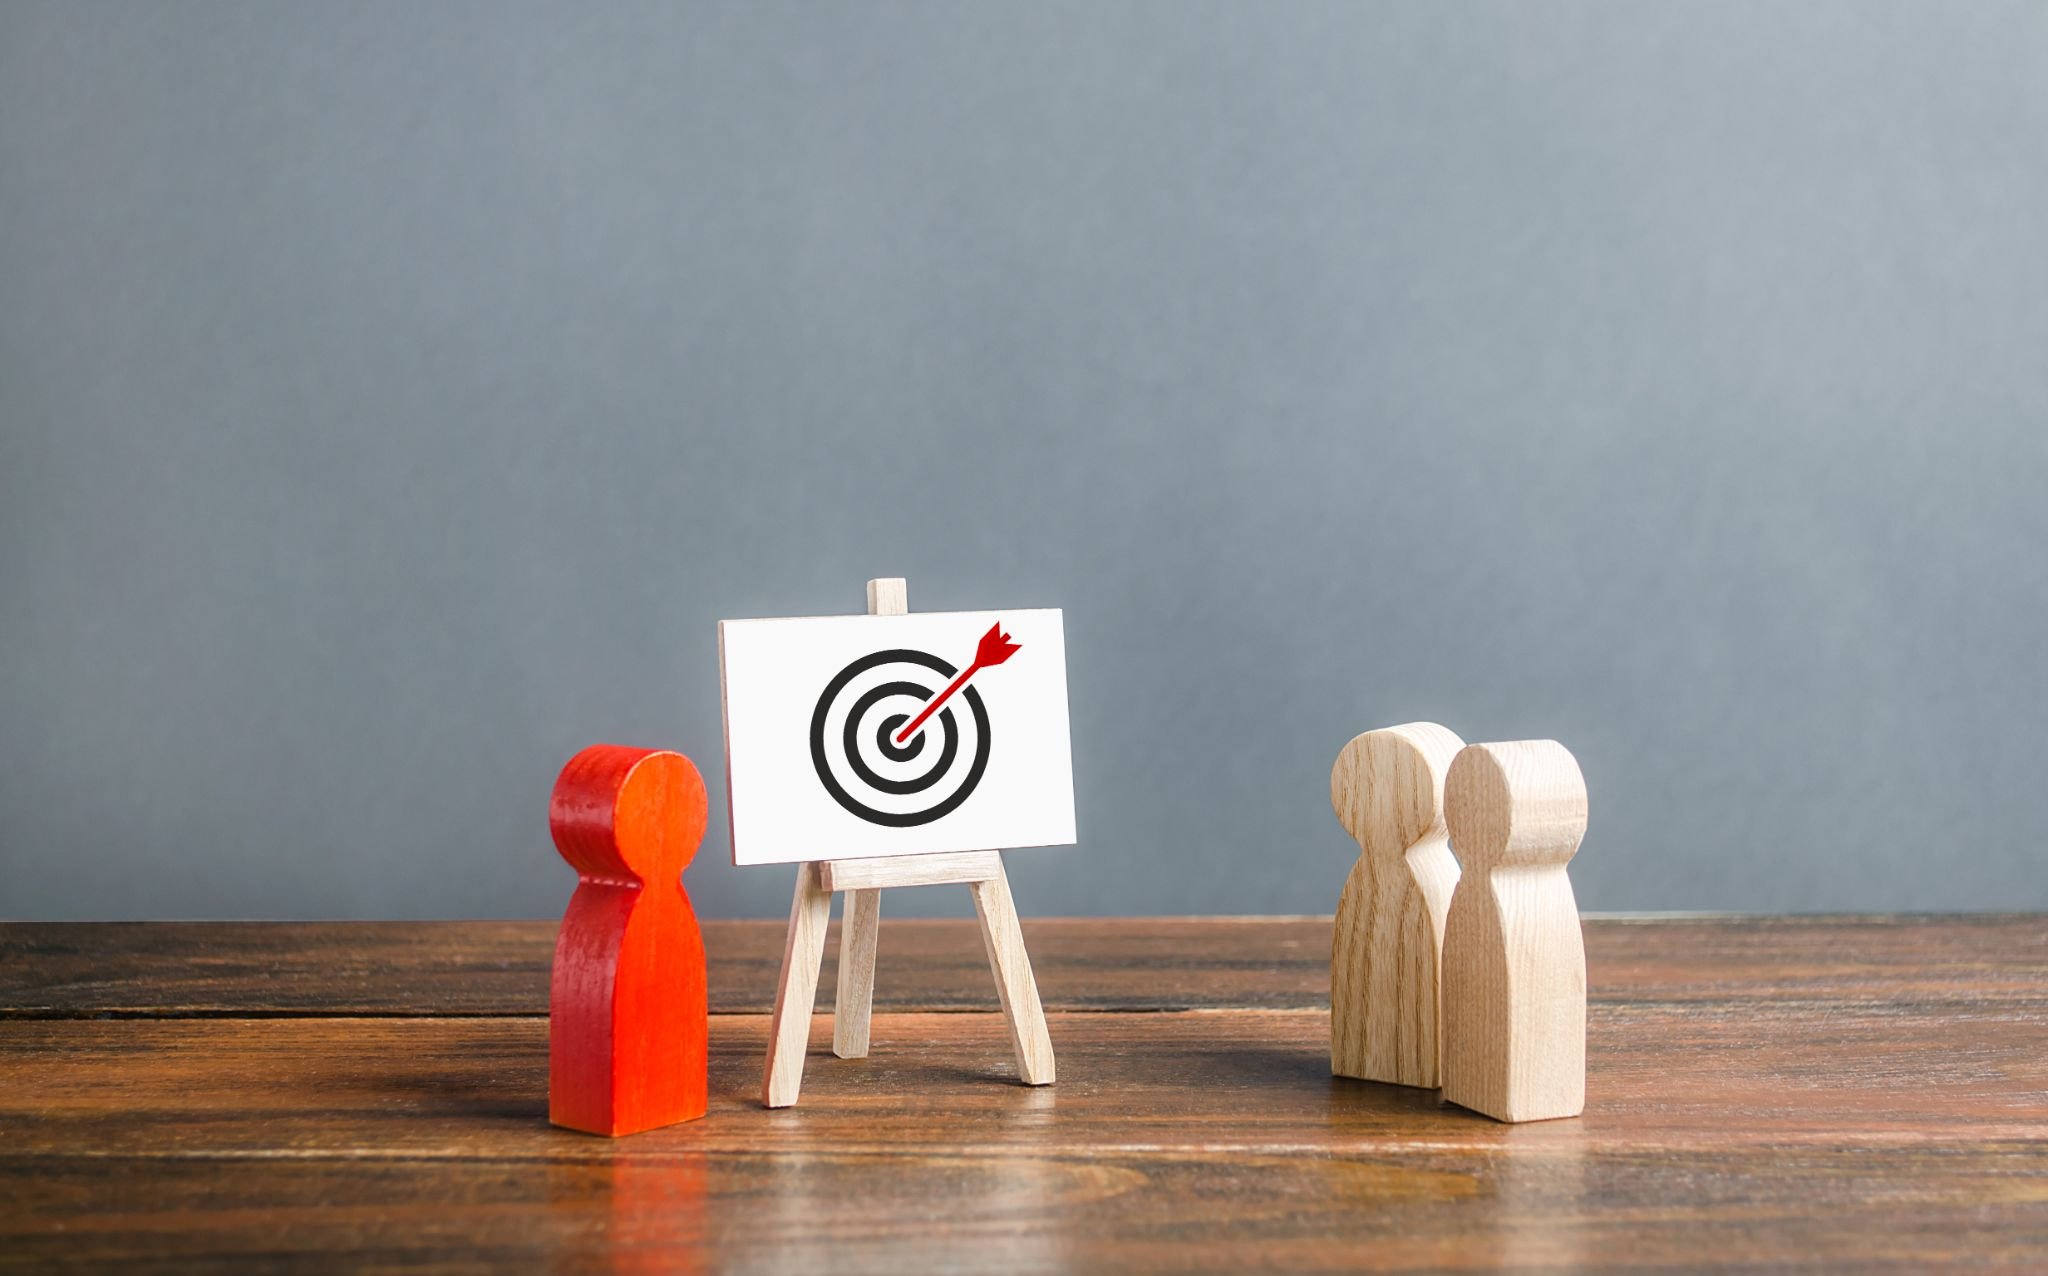 Mini red wooden figurine standing next to mini board with a target painted on it where the arrow hits the bullseye. Look like the red figurine is explaining the STP marketing model to two other brown mini figurines